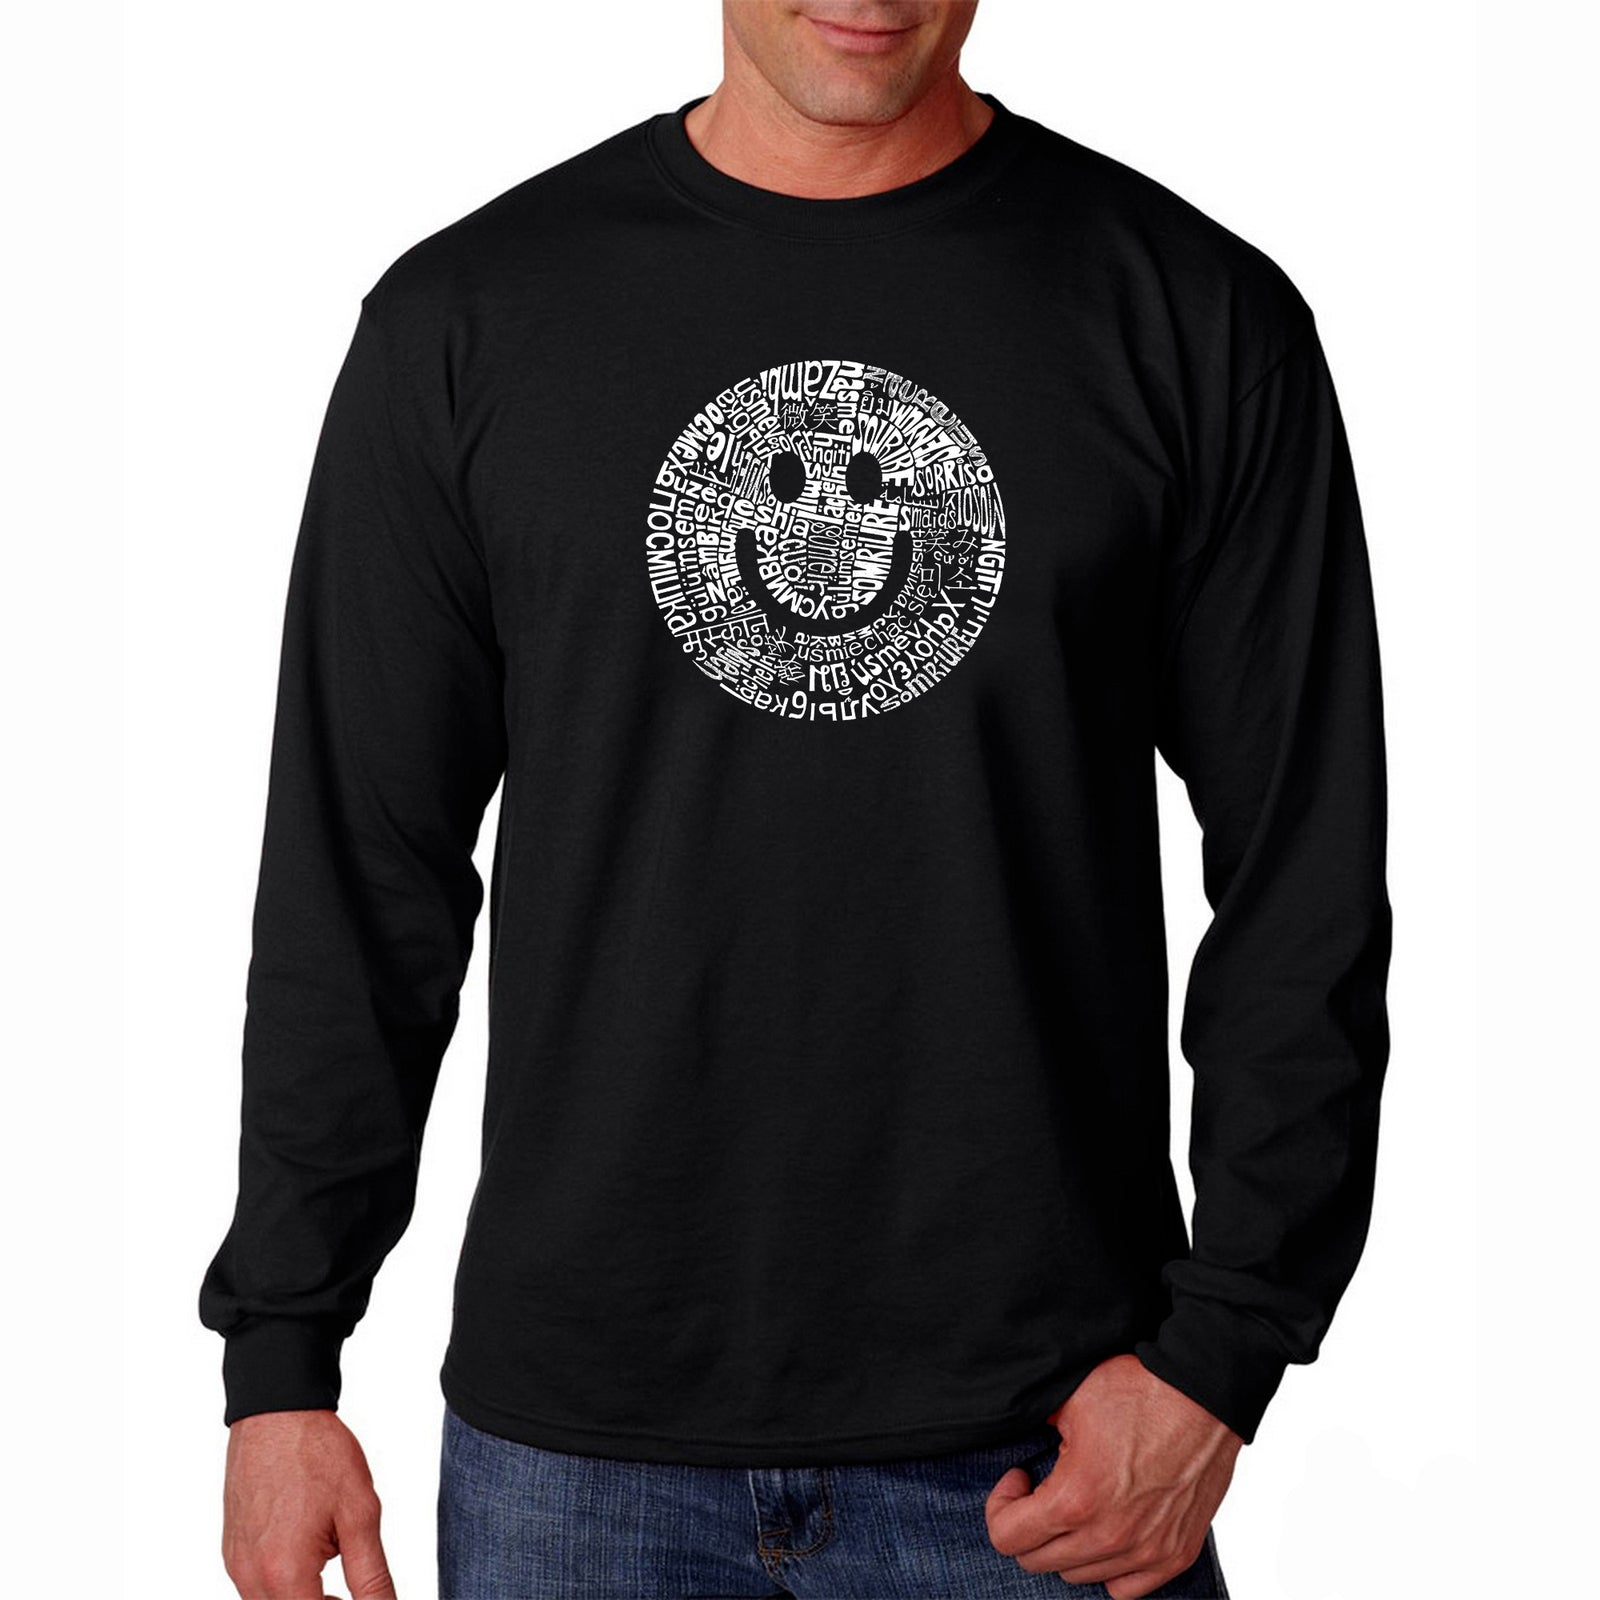 Men's Long Sleeve T-shirt - SMILE IN DIFFERENT LANGUAGES